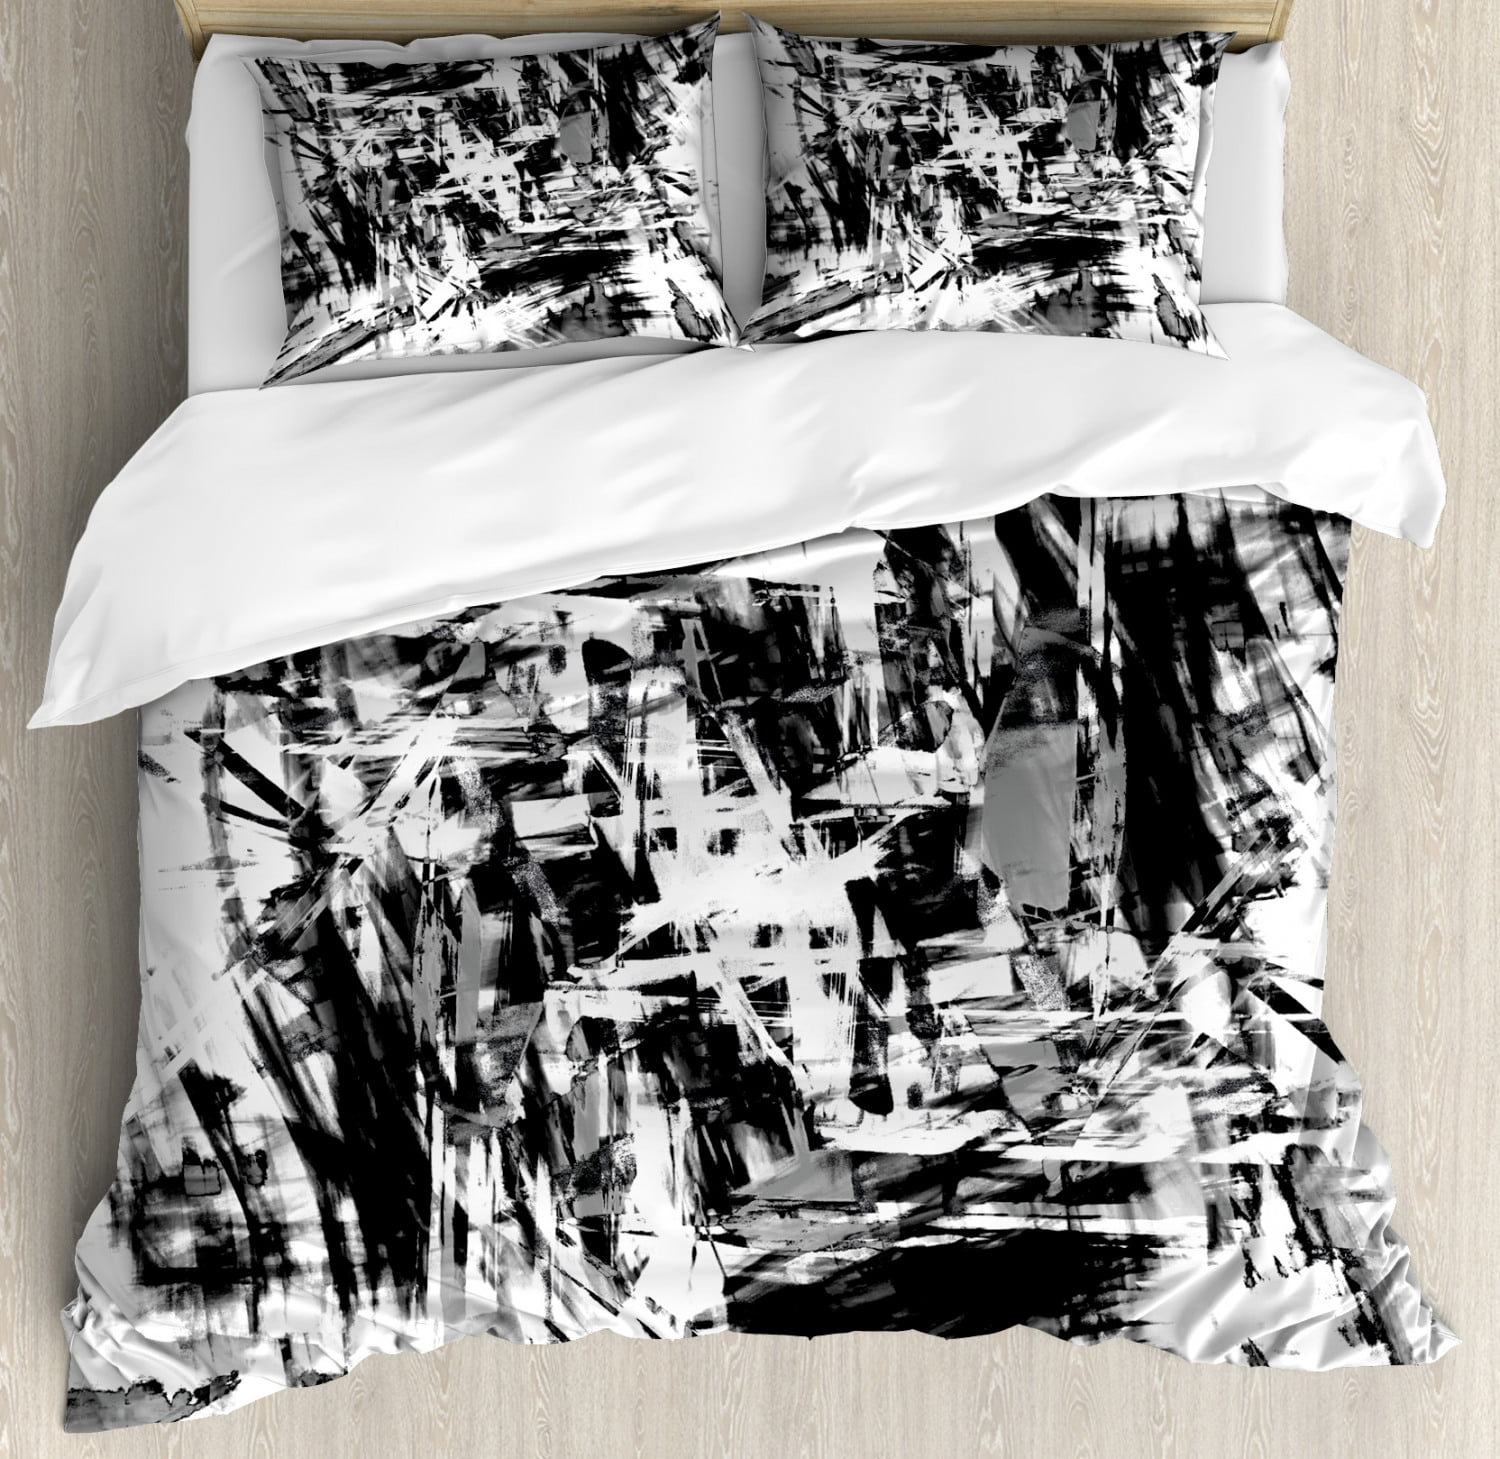 Black And White Duvet Cover Set Old Grunge Style Abstract Art With Brushstrokes Chaos Image Print Decorative Bedding Set With Pillow Shams Black White Grey By Ambesonne Walmart Com Walmart Com